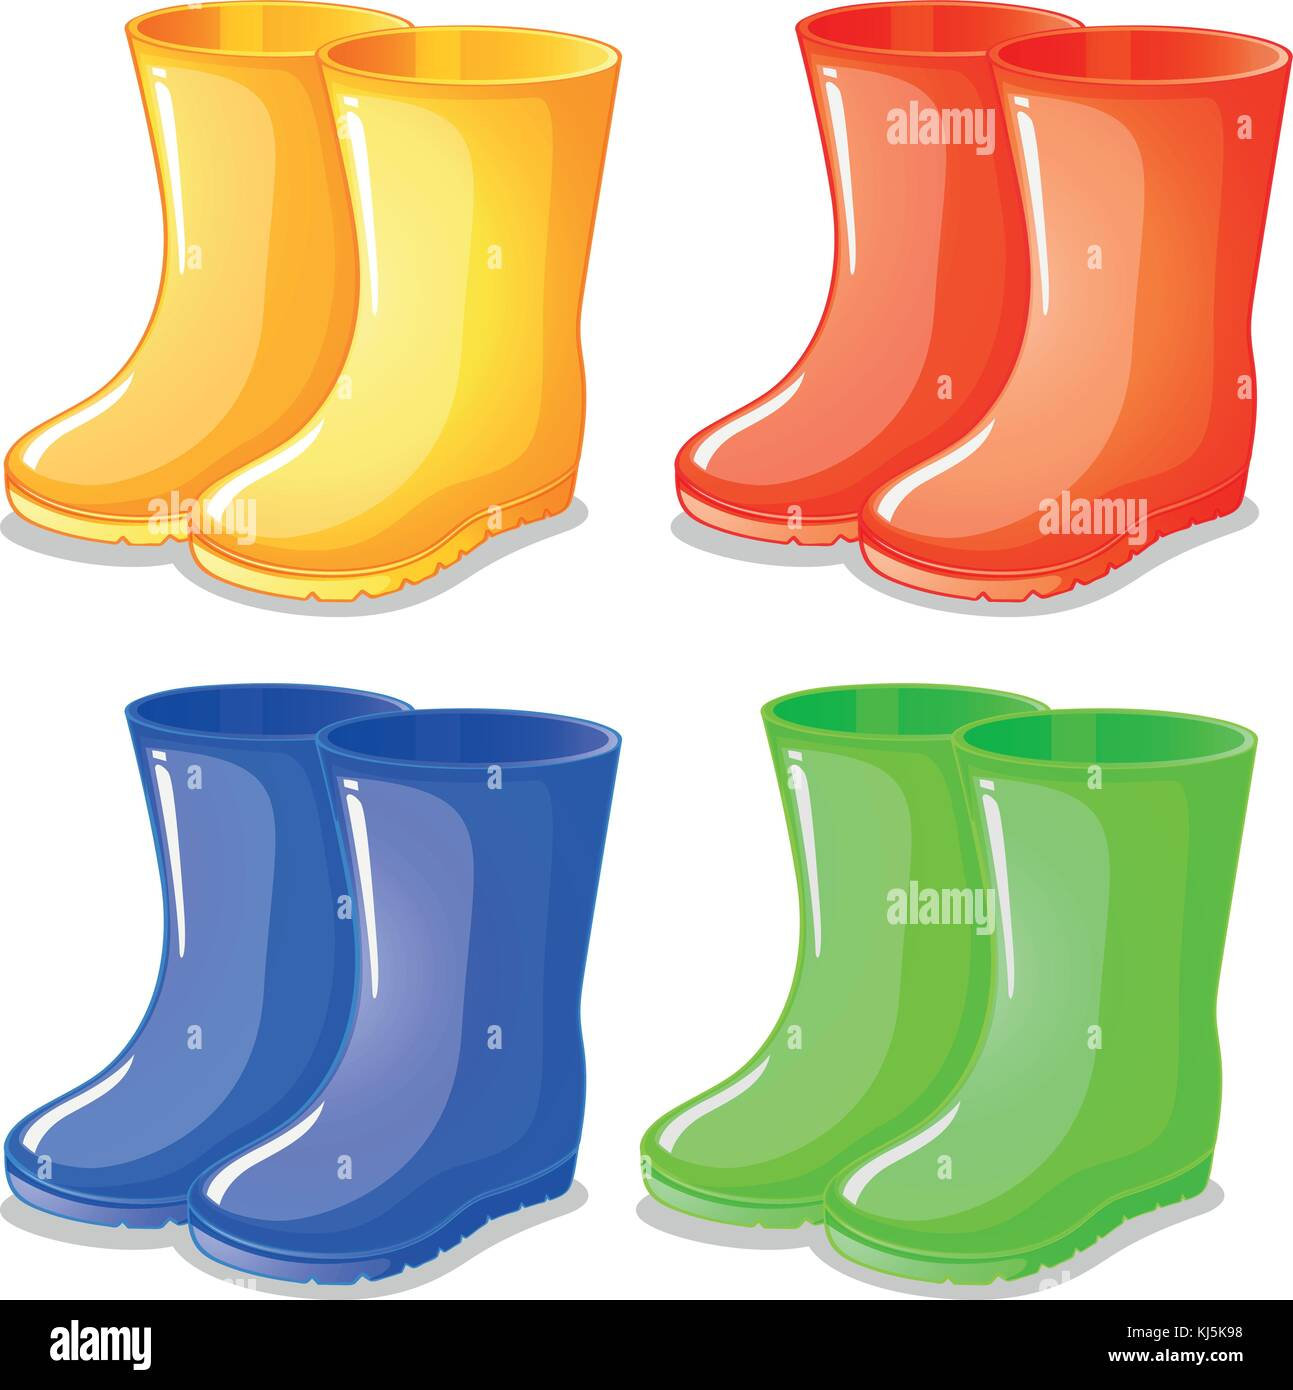 Illustration of the four boots in different colors on a white background - Stock Vector